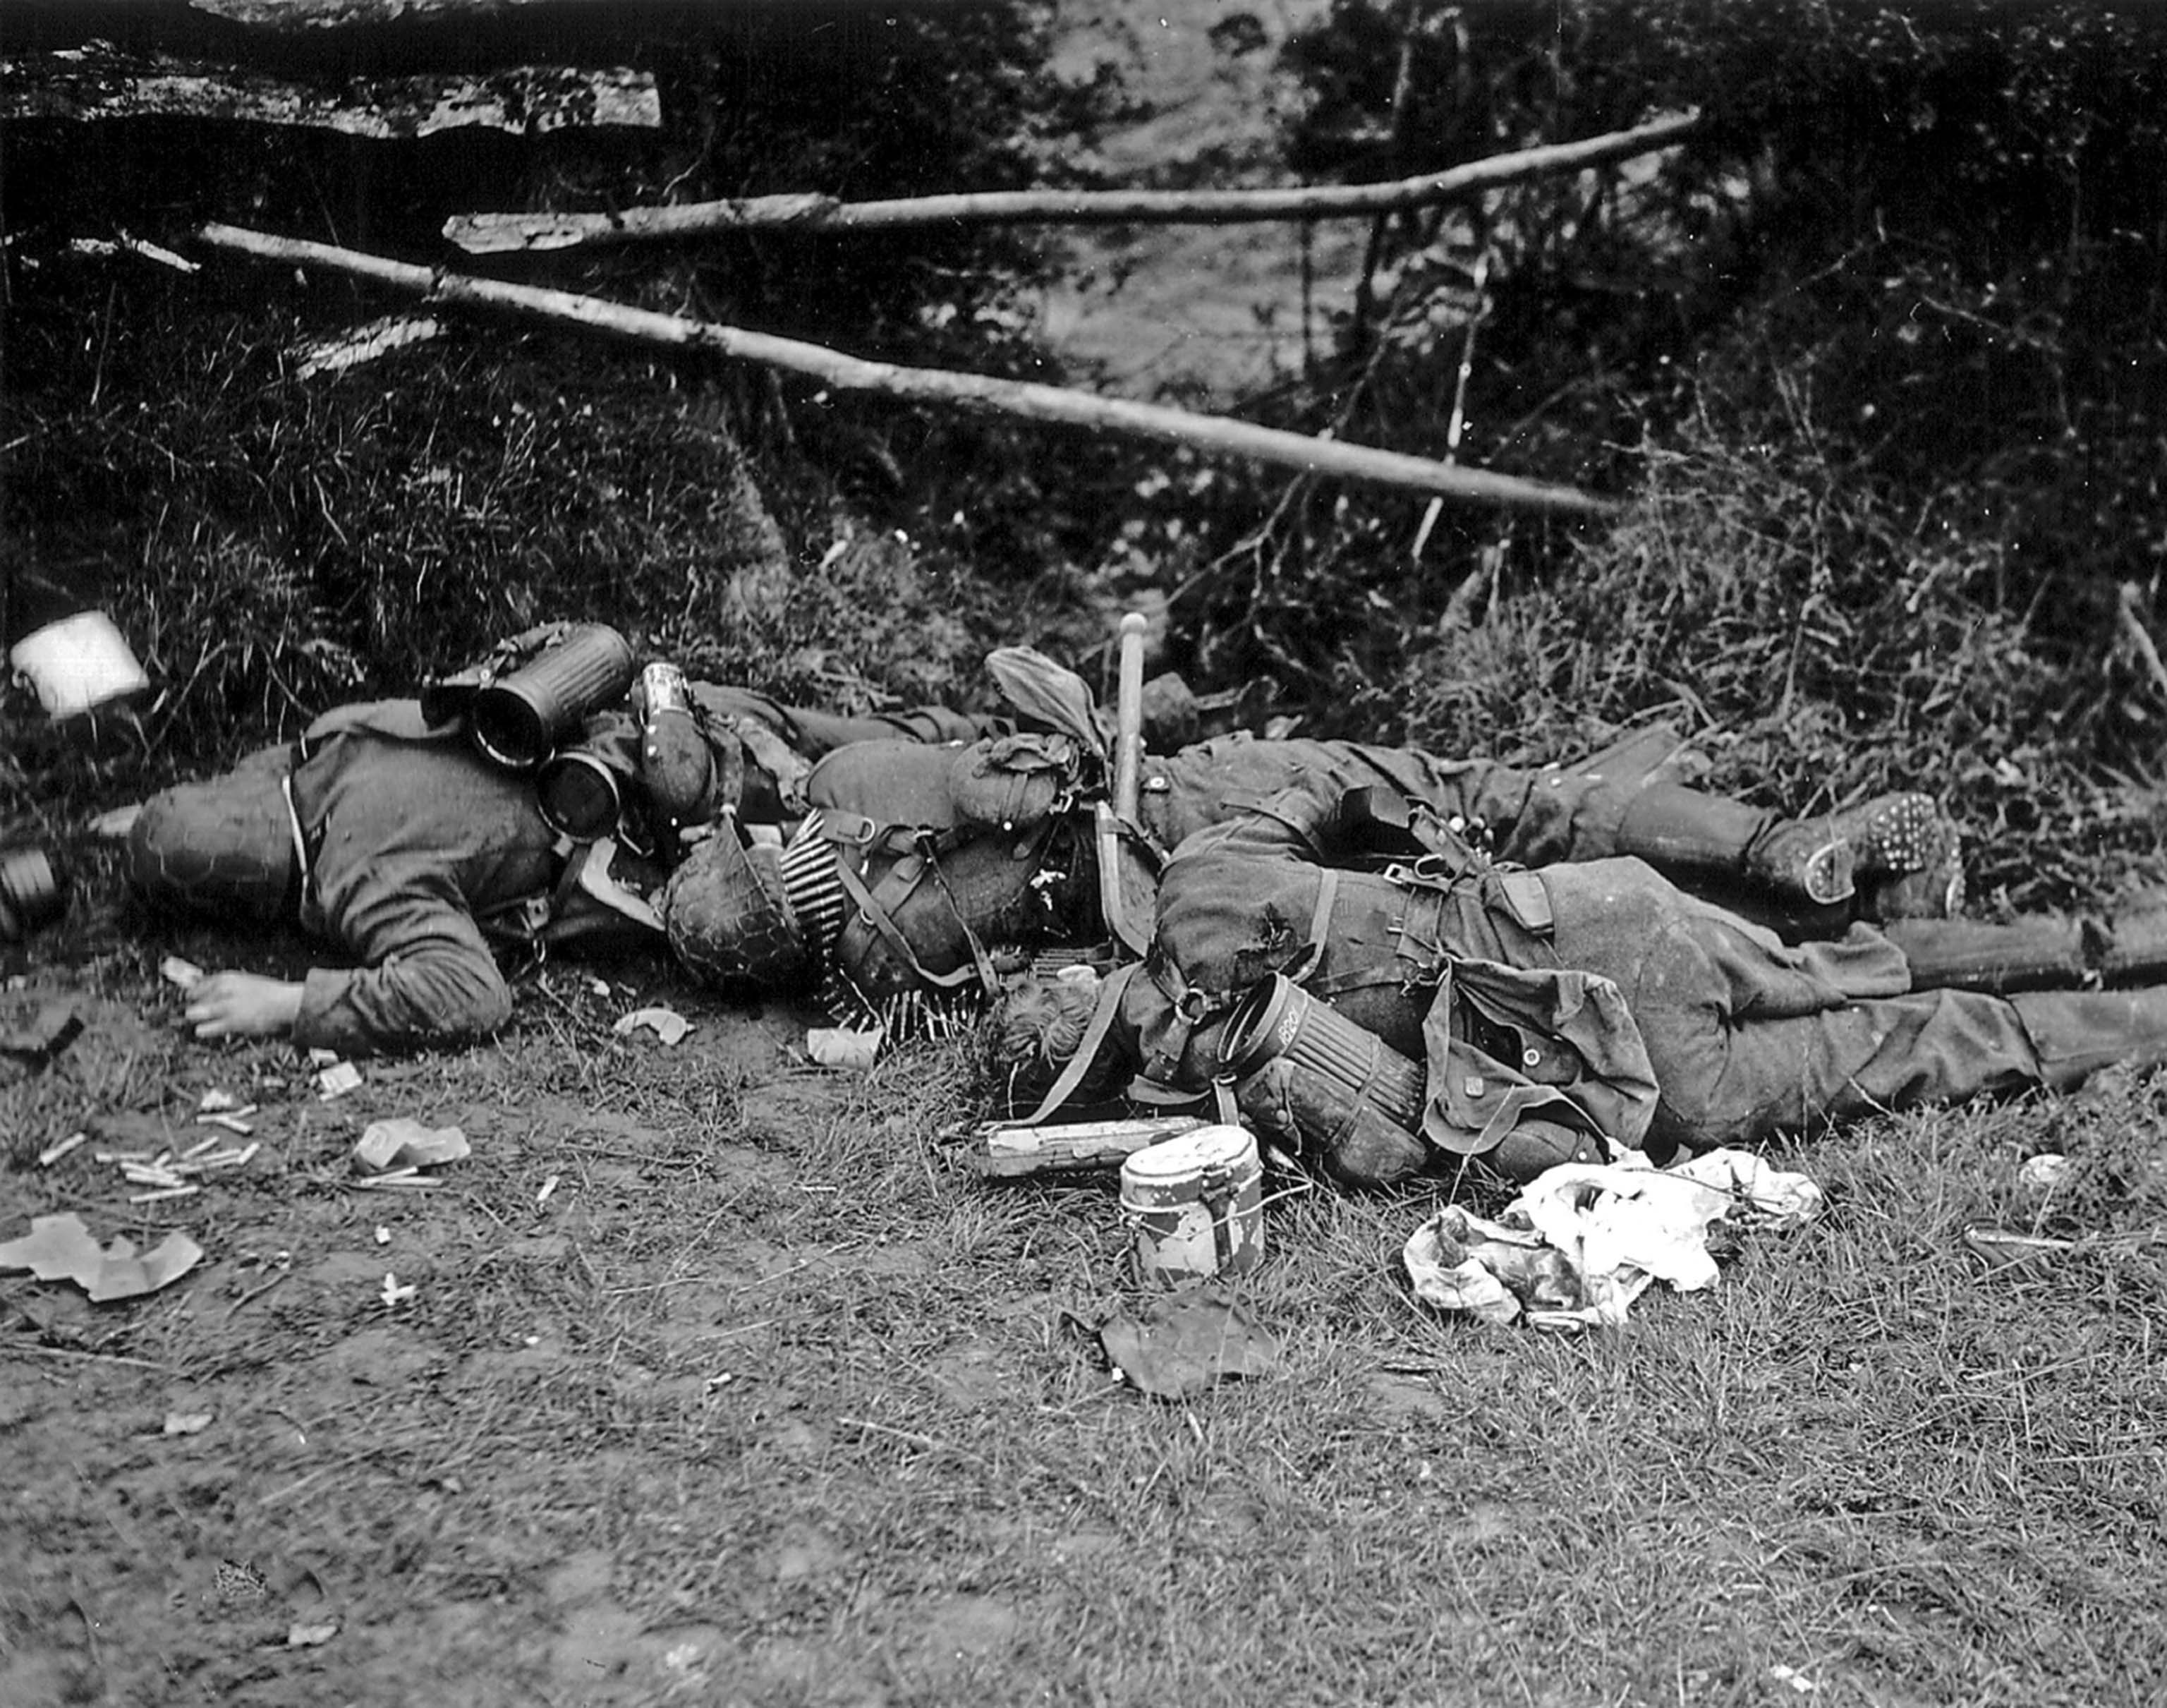 corpses of soldiers